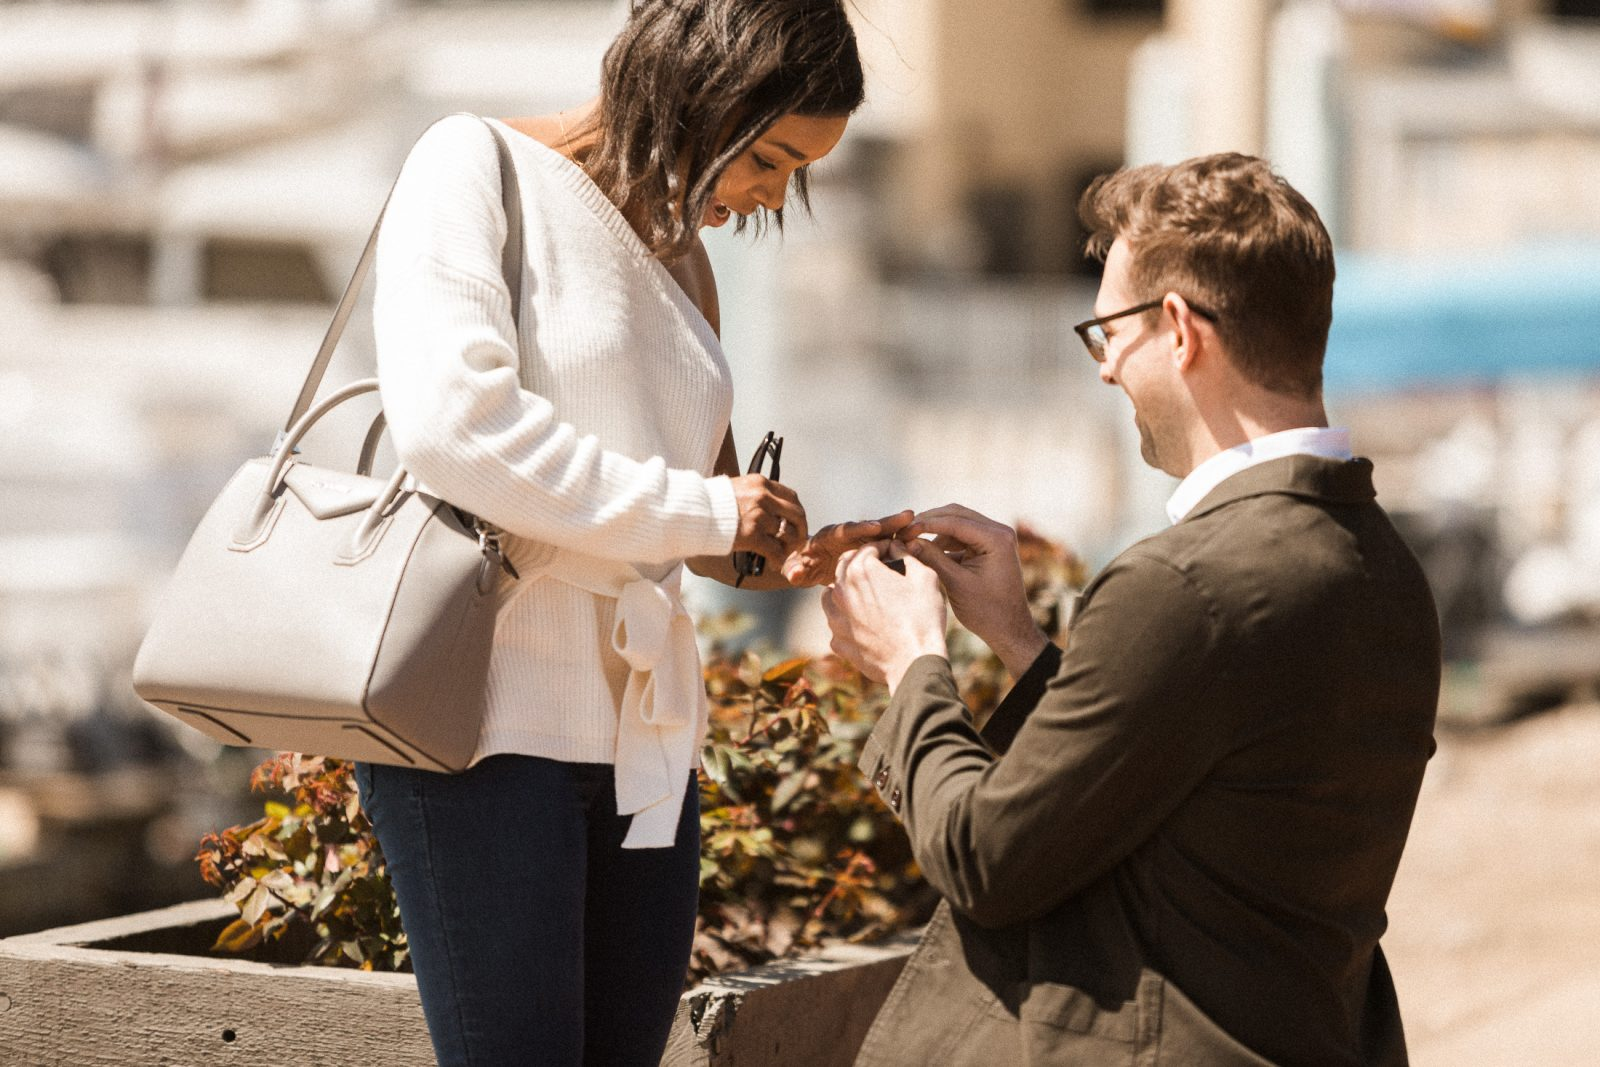 young man proposes to young woman in Canton, Baltimore near Fells Point in front of the restaurant where they had their first date